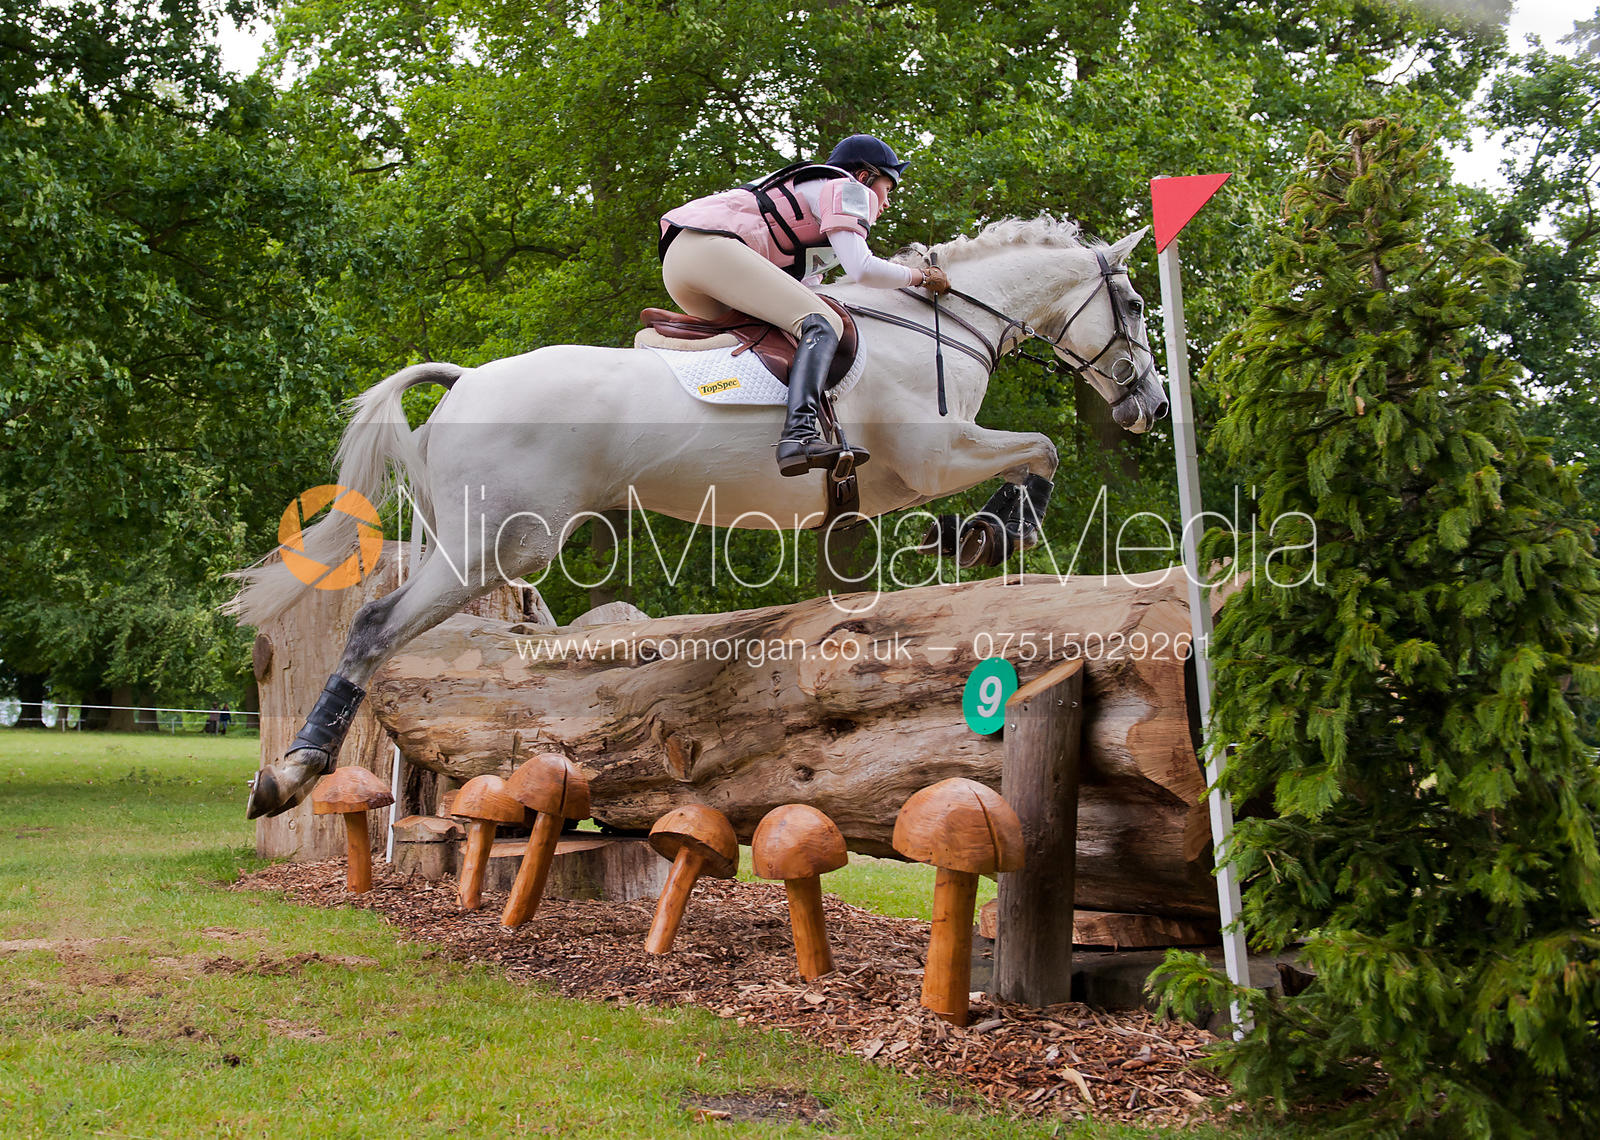 Rebecca Crosbie-Starling and Clifton Clicquot, Subaru Houghton International Horse Trials, May 2011